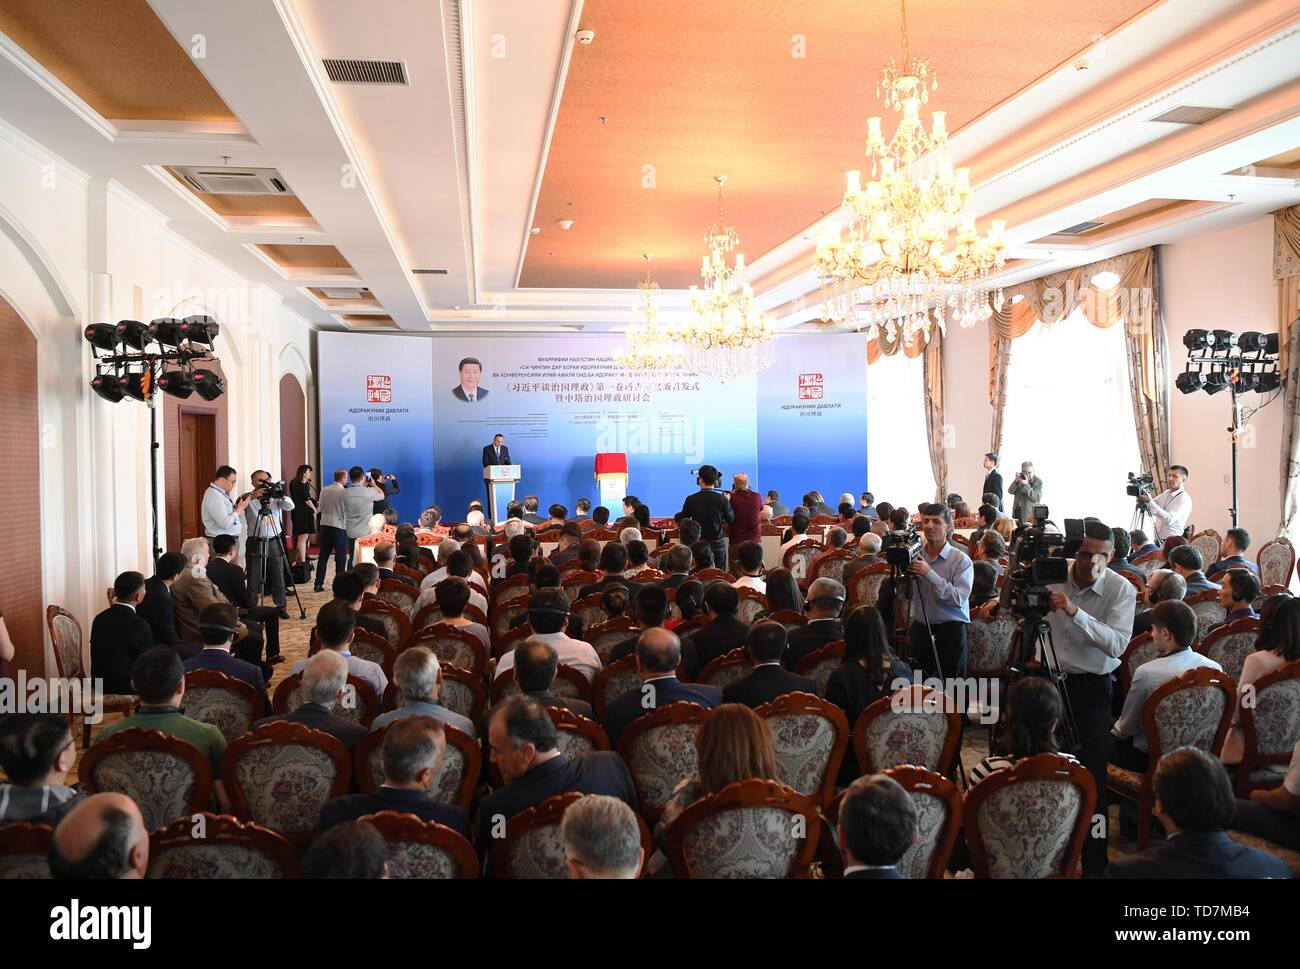 (190613) -- DUSHANBE, June 13, 2019 (Xinhua) -- The Tajik edition of the first volume of 'Xi Jinping: The Governance of China' is released at a China-Tajikistan seminar on state governing, prior to the state visit of the Chinese president to the Central Asian country, in Dushanbe, capital of Tajikistan, June 11, 2019. Tajik President Emomali Rahmon congratulated his Chinese counterpart on the publication of the book in a letter, which was read by First Deputy Prime Minister Davlatali Said at the event. (Xinhua/Sadat) - Stock Image